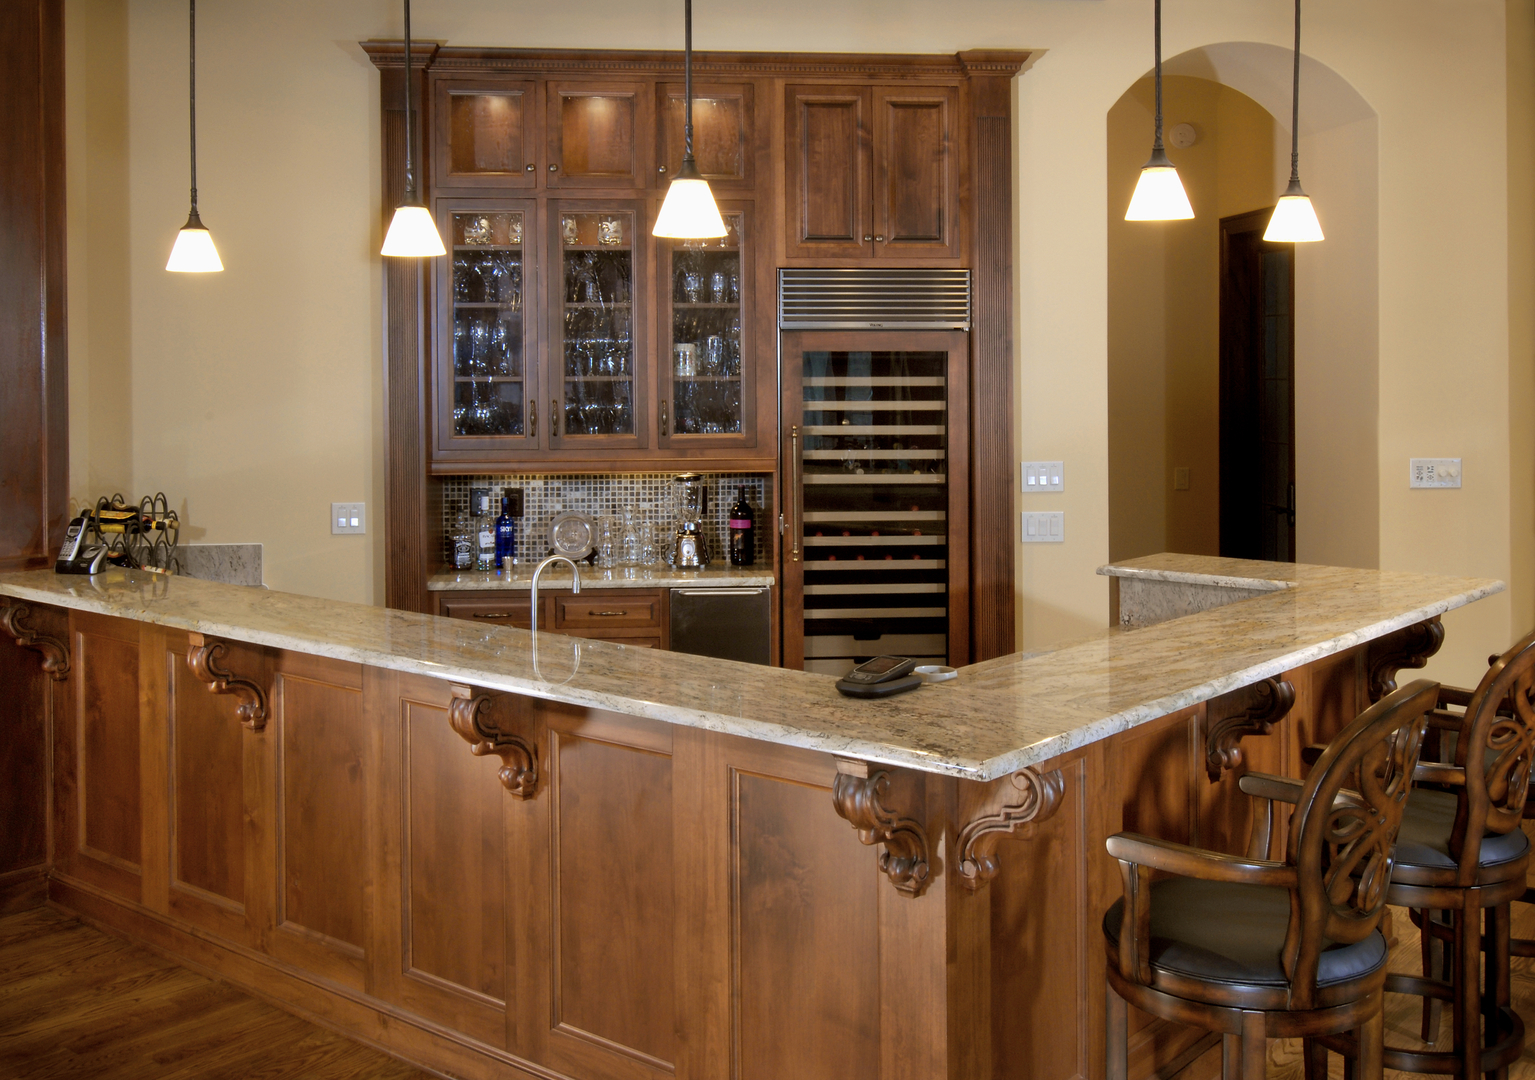 Kitchen Cabinets Birmingham Al kitchen and bathroom remodeling - needco, inc. - birmingham, al